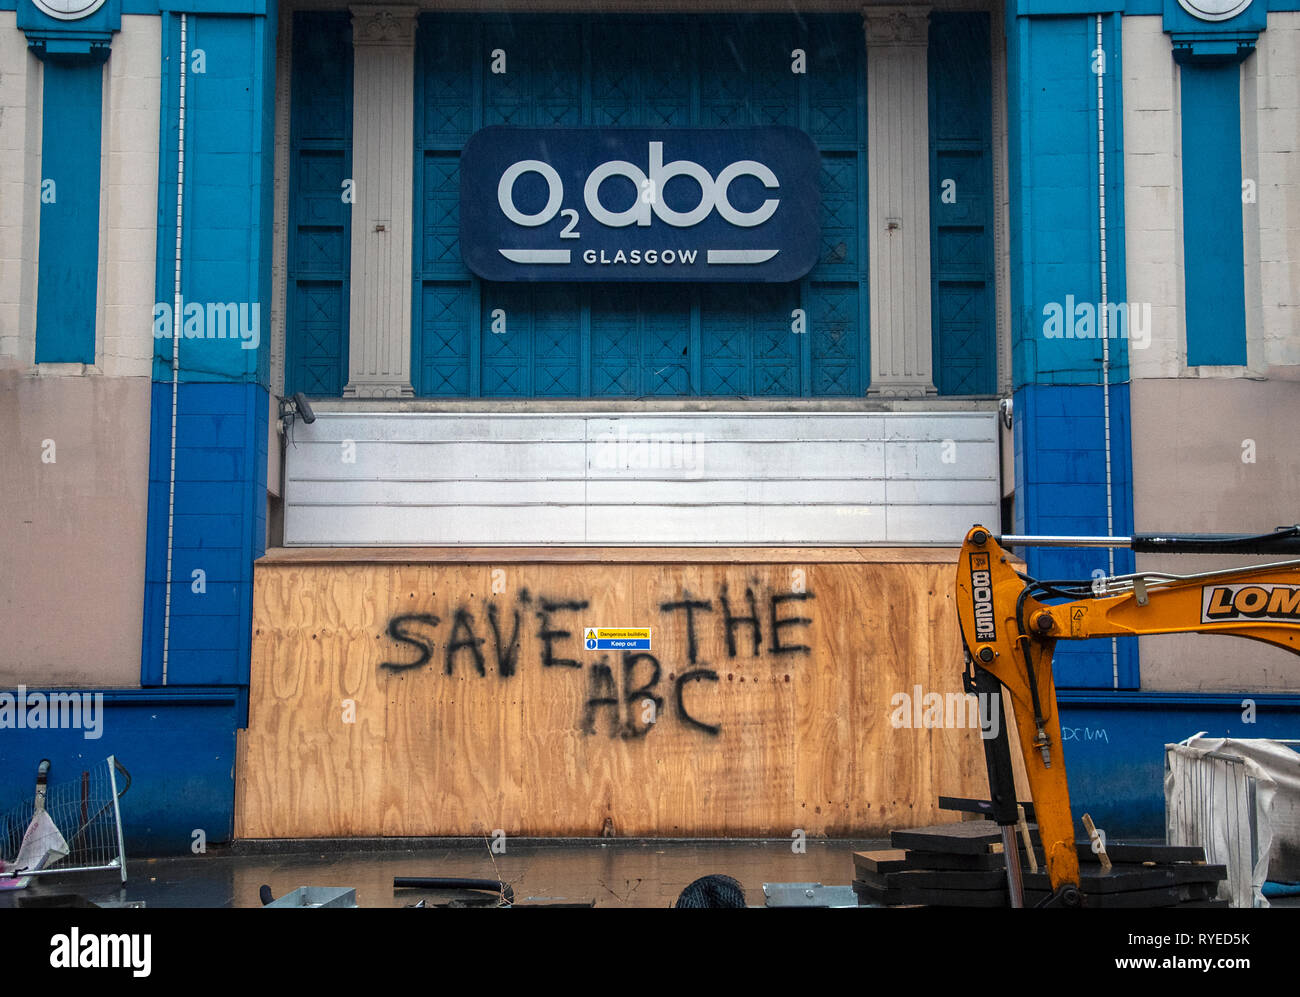 GLASGOW, SCOTLAND - 11th MARCH 2019: The O2 ABC music venue closed due to the Glasgow Art school fire. Locals want the ABC to open its doors. - Stock Image